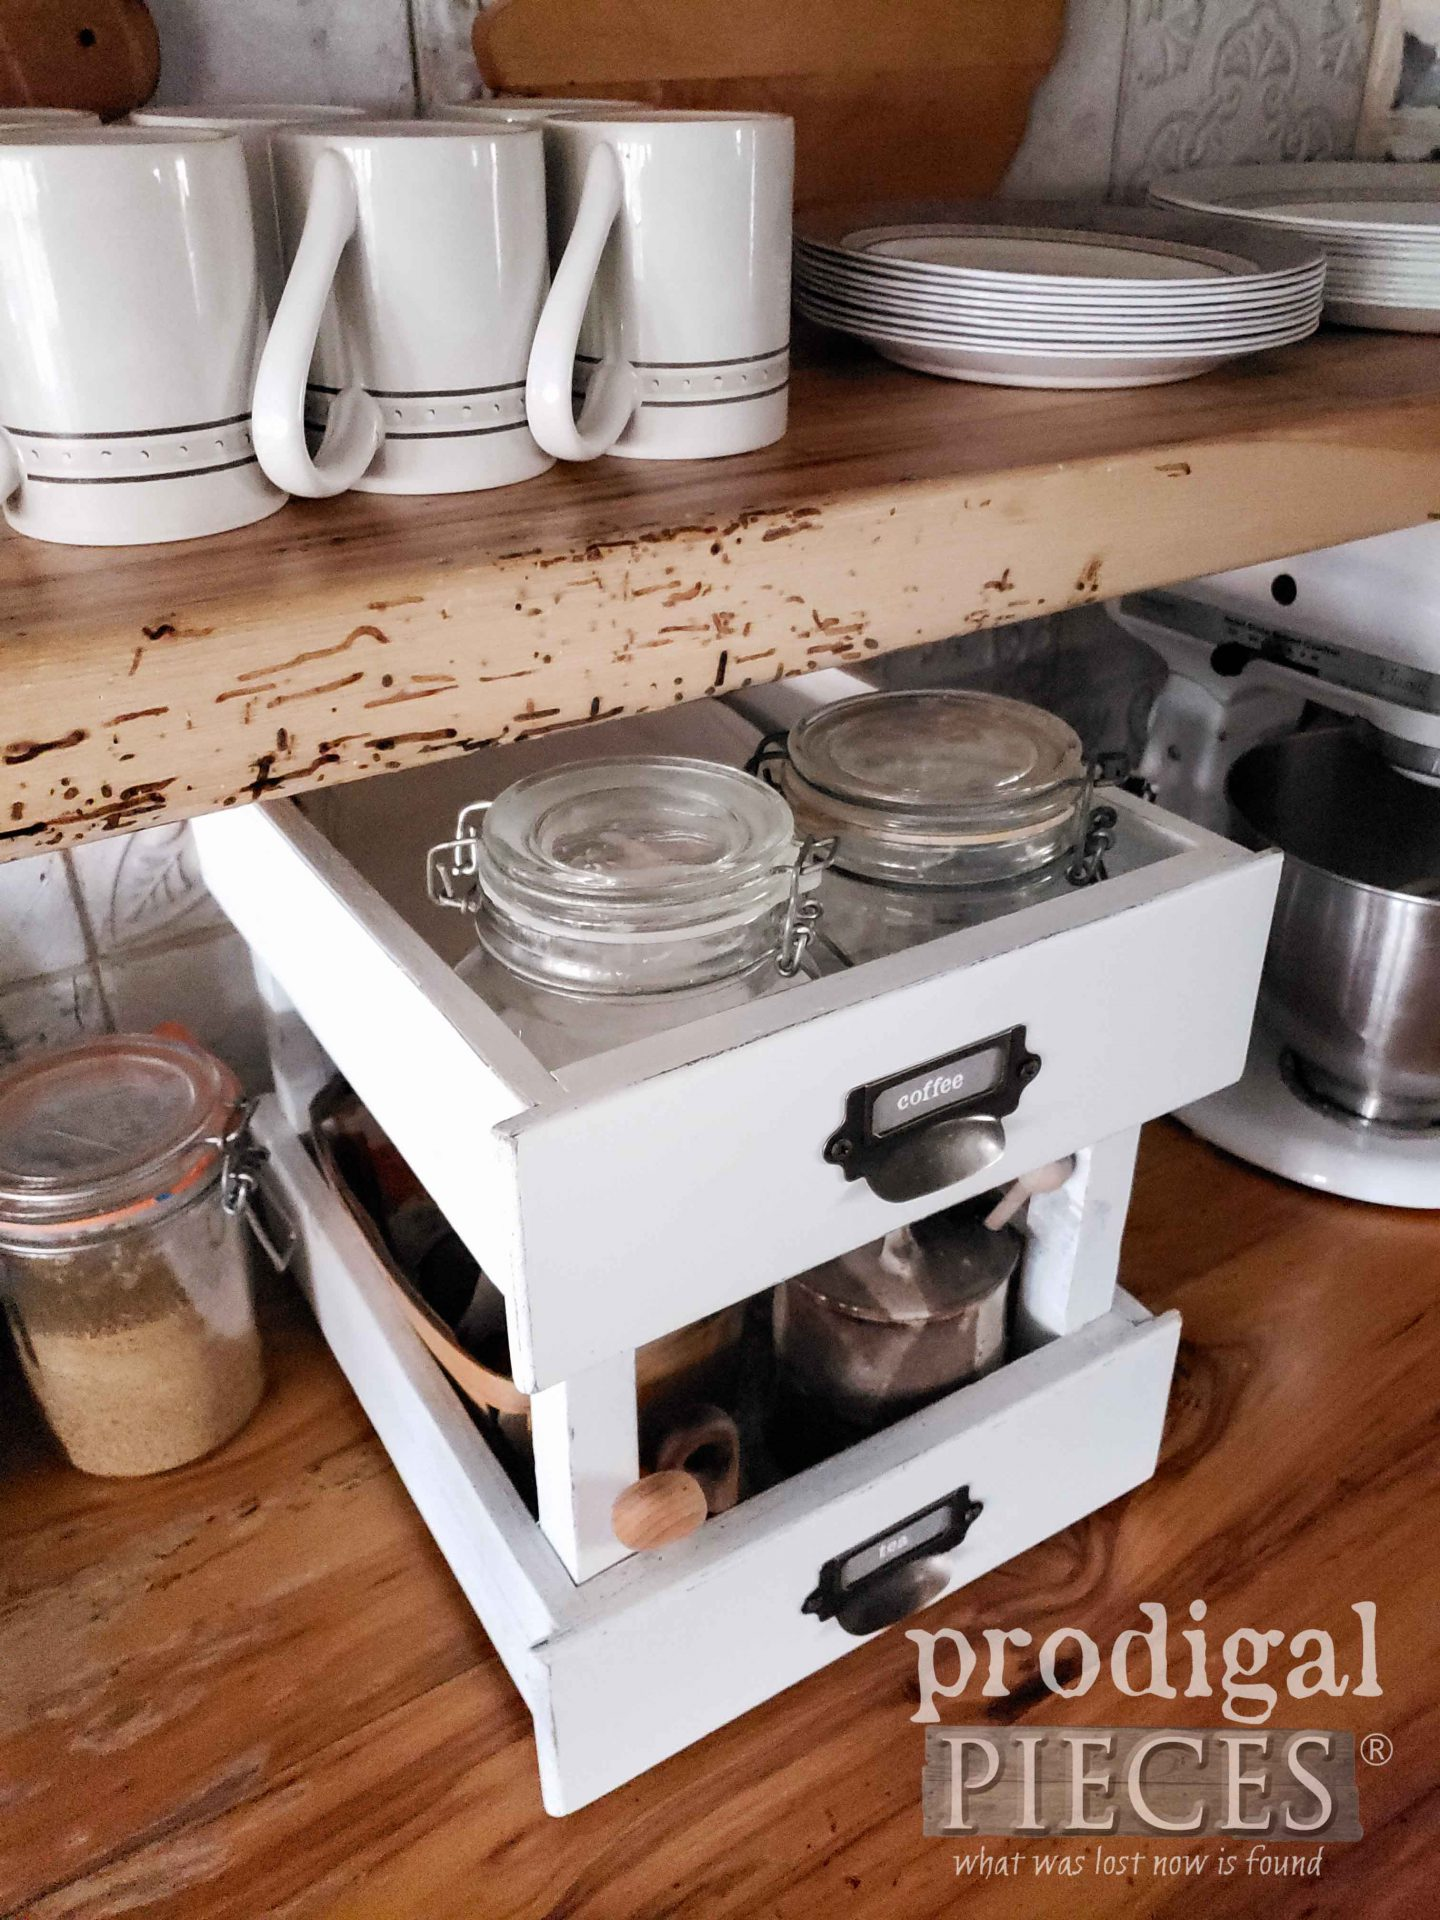 DIY Tiered Drawer Stand created by Larissa of Prodigal Pieces | prodigalpieces.com #prodigalpieces #diy #home #homedecor #farmhouse #upcycled